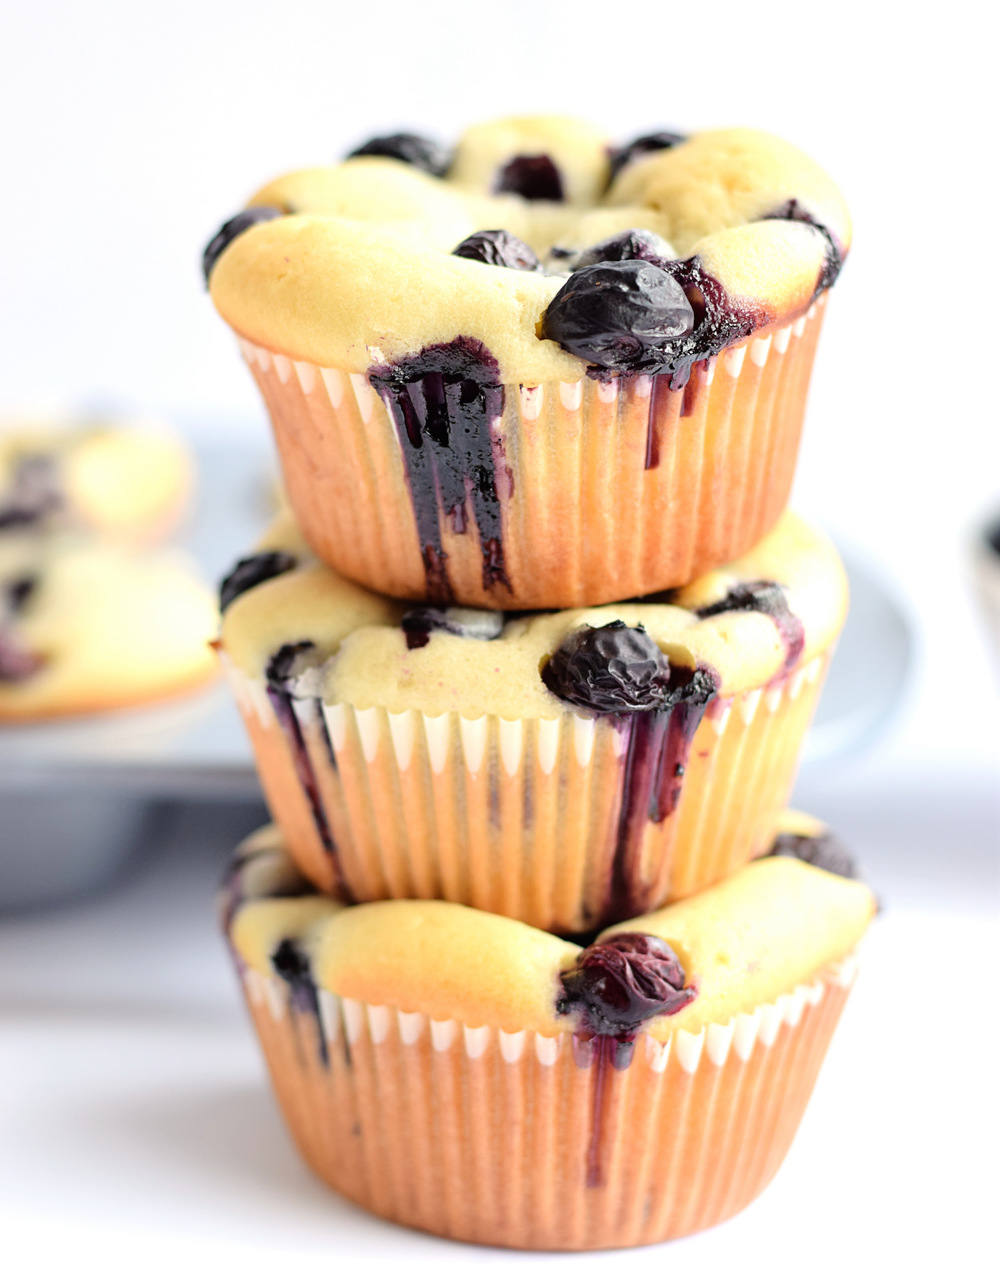 Soft and Moist Blueberry Muffins | TrufflesandTrends.com